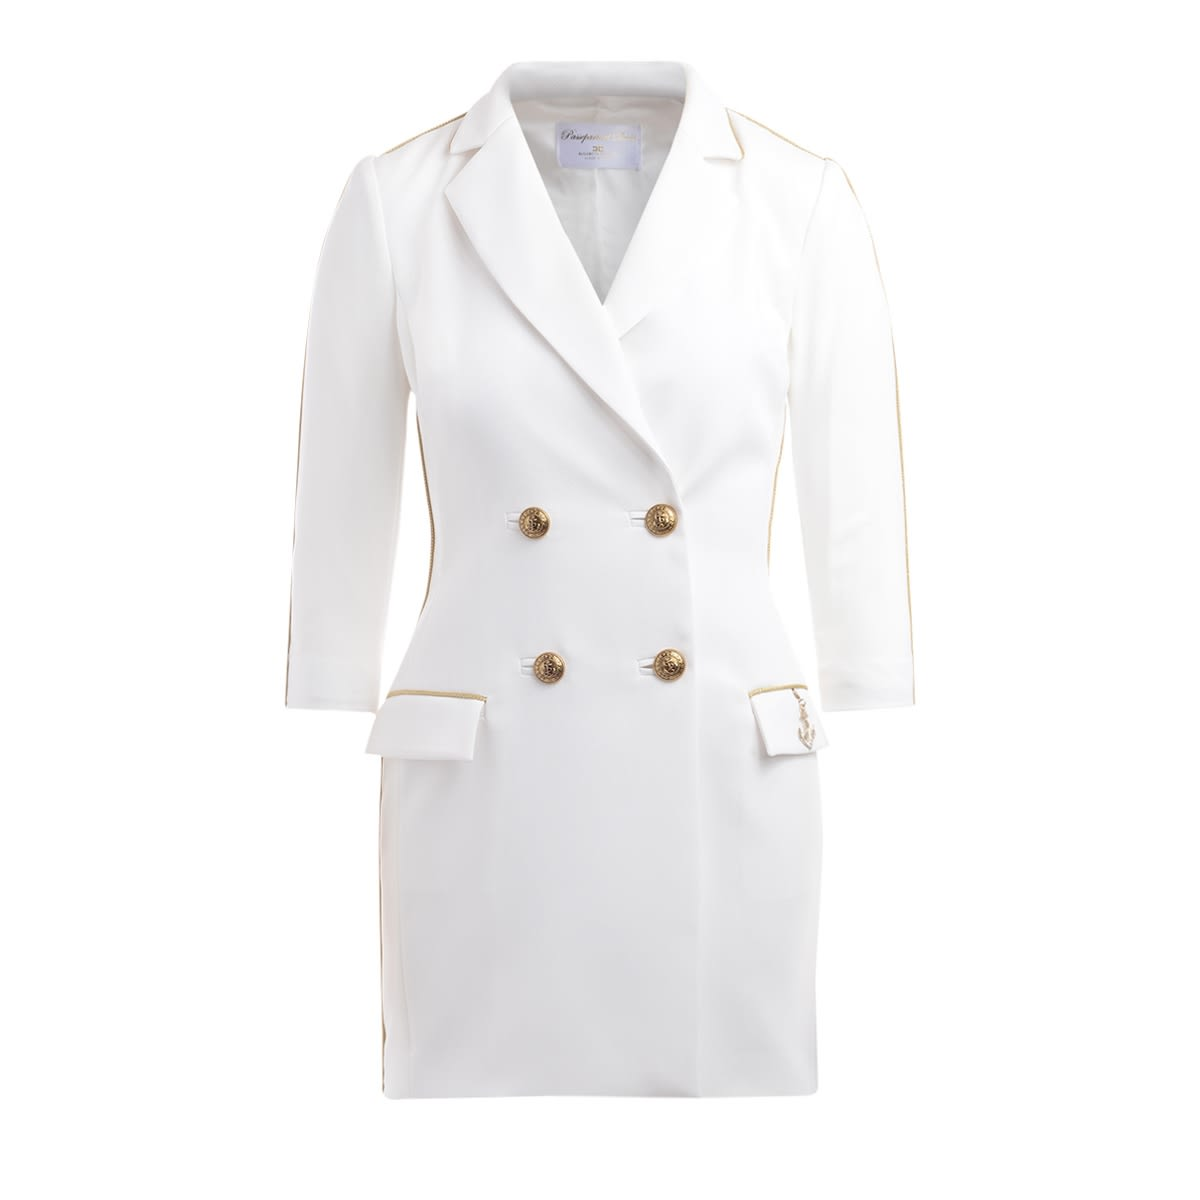 Buy Double-breasted Dress By Elisabetta Franchi In Ivory Crepe online, shop Elisabetta Franchi Celyn B. with free shipping